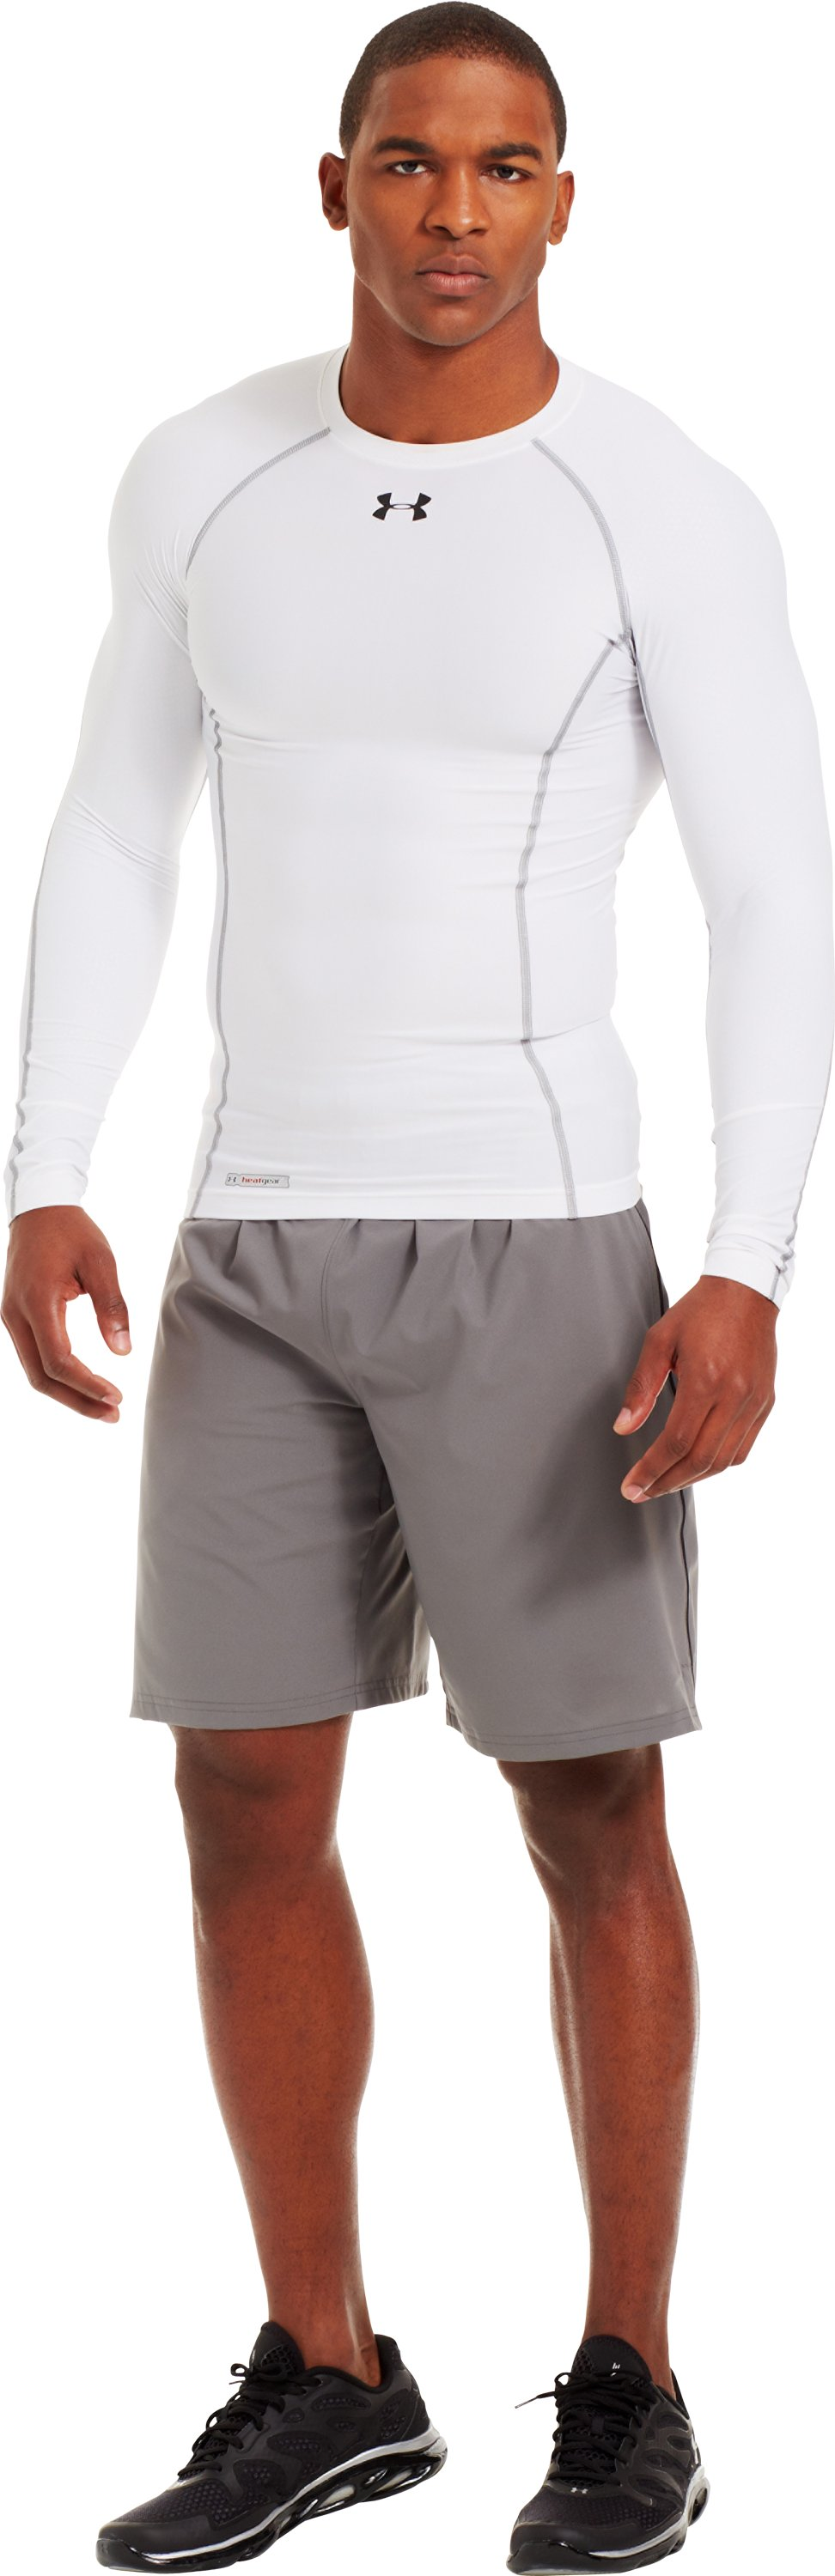 Men's HeatGear® Renegade Compression Long Sleeve, White